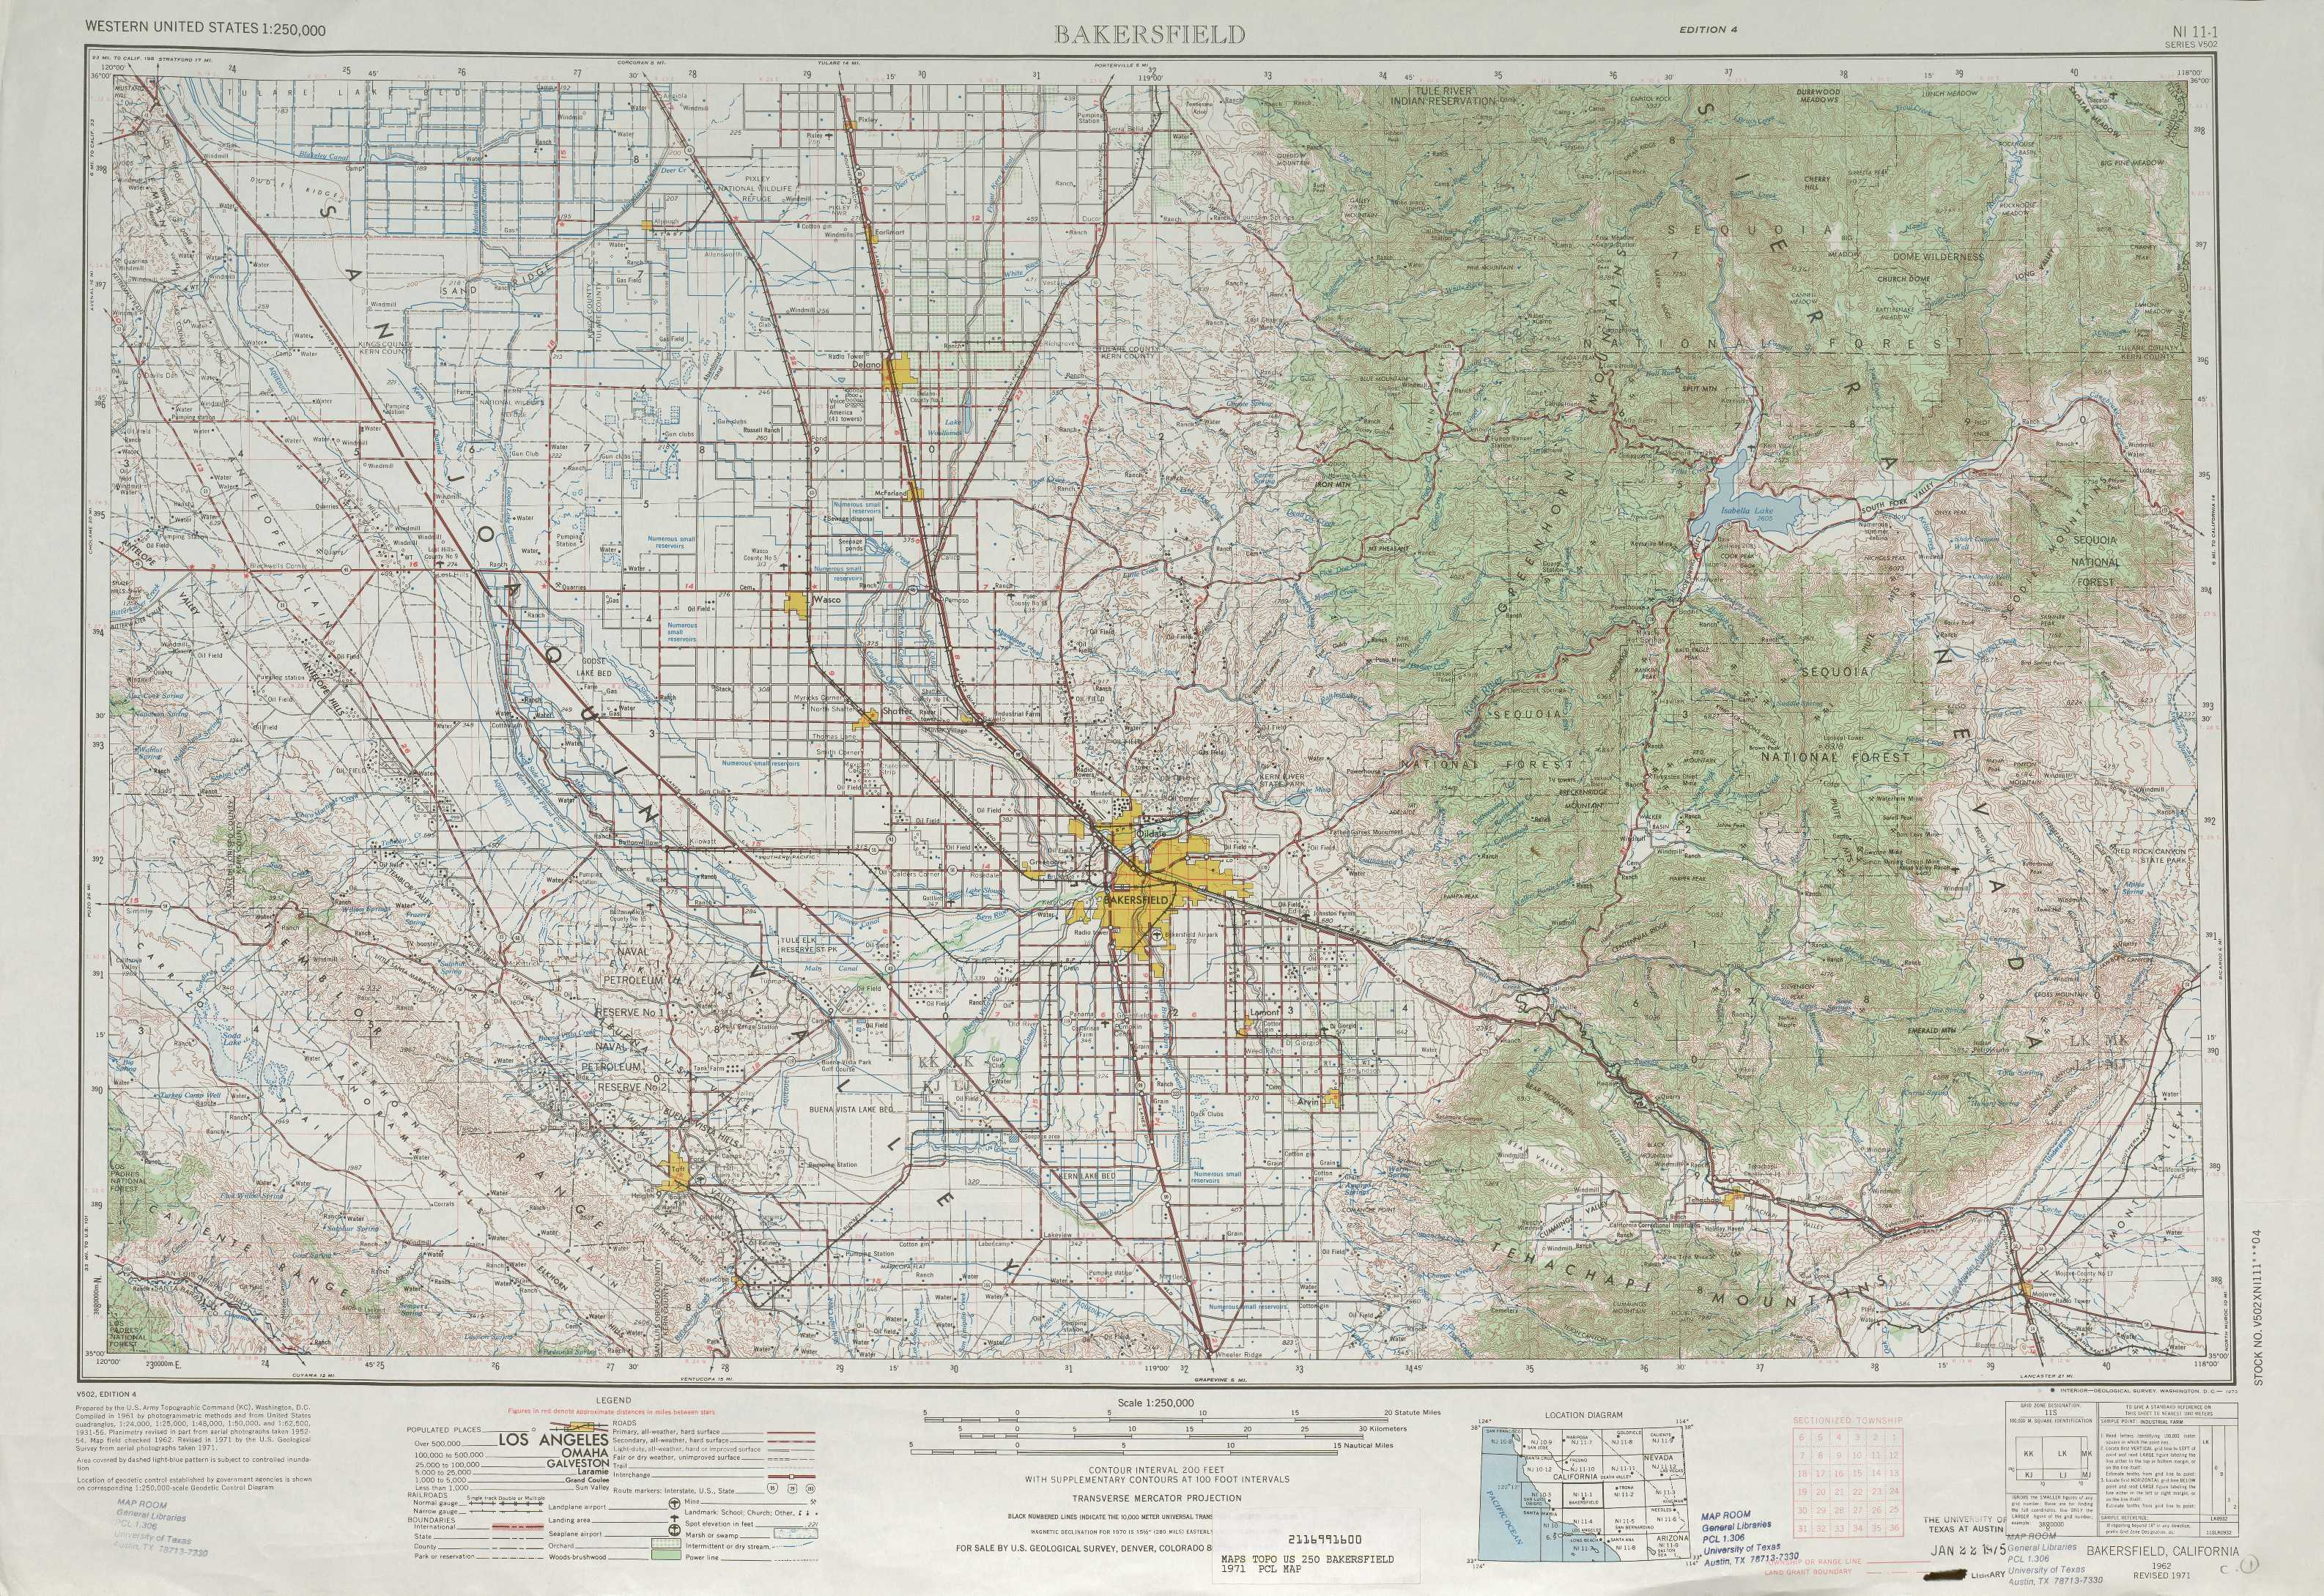 Bakersfield Topographic Maps CA USGS Topo Quad A At - Los angeles topographic map